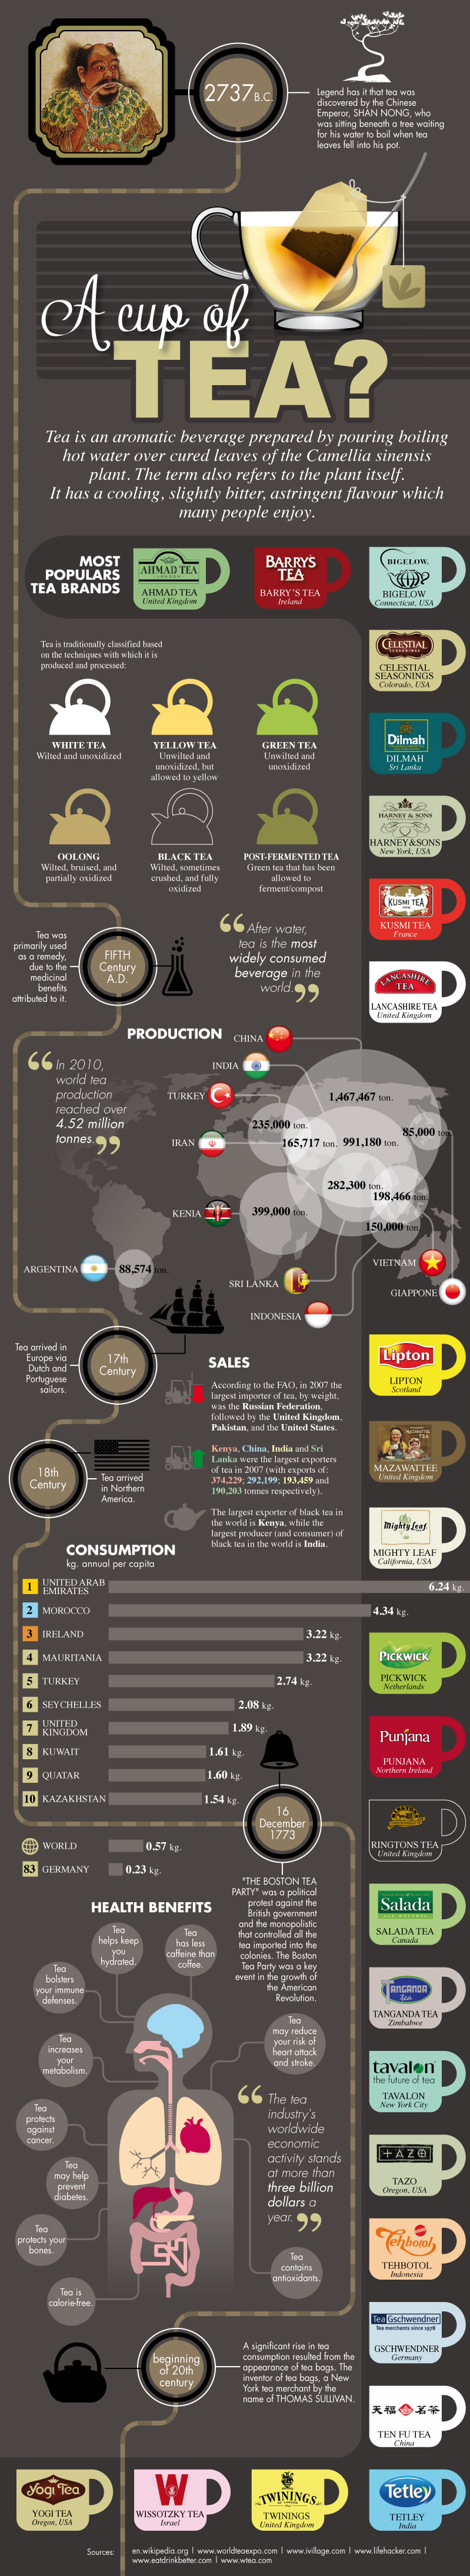 Everything You Need To Know About Tea - Infographic